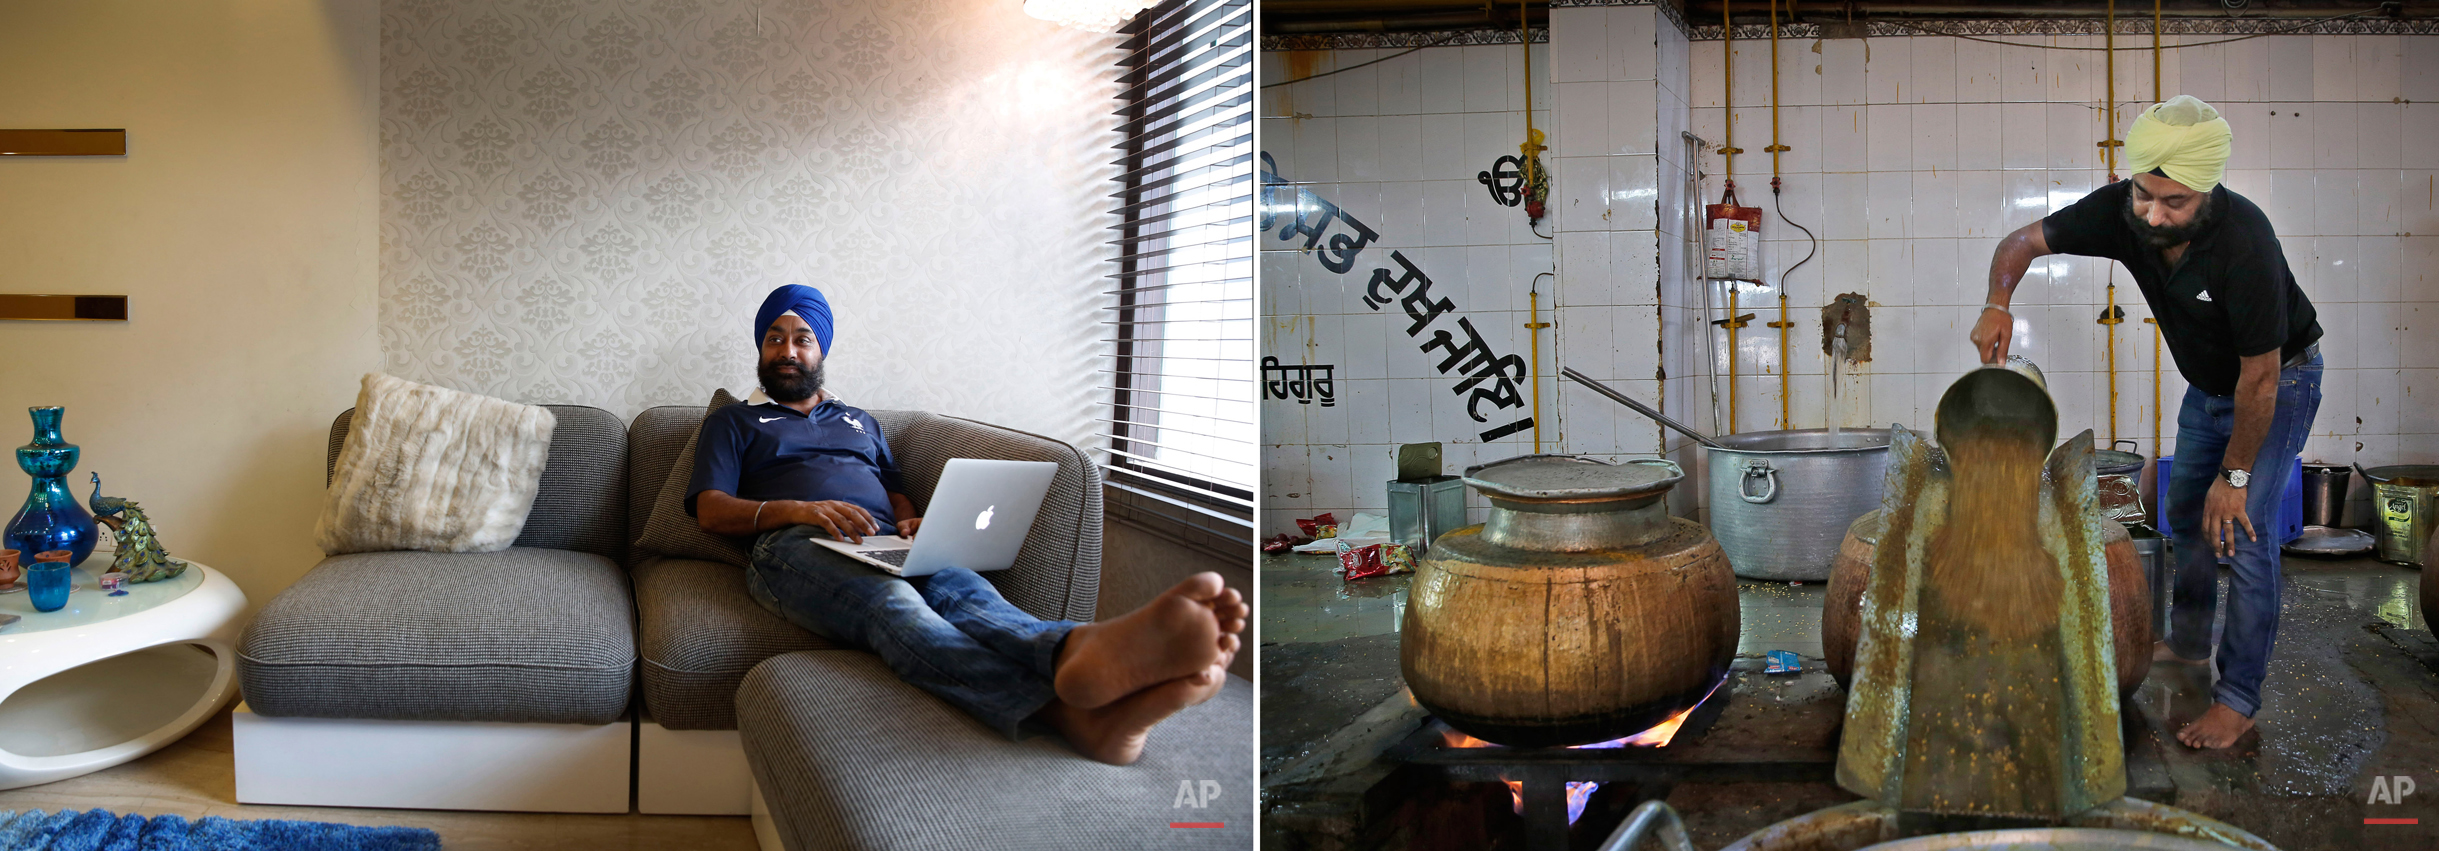 This two picture combo shows on left, Kulbir Singh, 31, a marketing executive in a media group, sits at his house in South Extension in New Delhi, India, on June 4, 2015 as on right, he pours lentils into a large utensil as he prepares food for langar, or free community meal, to be served to devotees at Bangla Sahib Gurudwara or Sikh temple, on June 3, 2015, in New Delhi, India. Service is one of the most integral traditions of gurudwaras. From cleaning to preparing tons of food every day there is plenty of work to be done. And there are plenty of sevadaars, or volunteers, to do it. While the gurudwara employs a small group of men to help manage the kitchen, it depends on visiting worshippers to contribute nearly half of all work and food supplies. (AP Photo/Manish Swarup)